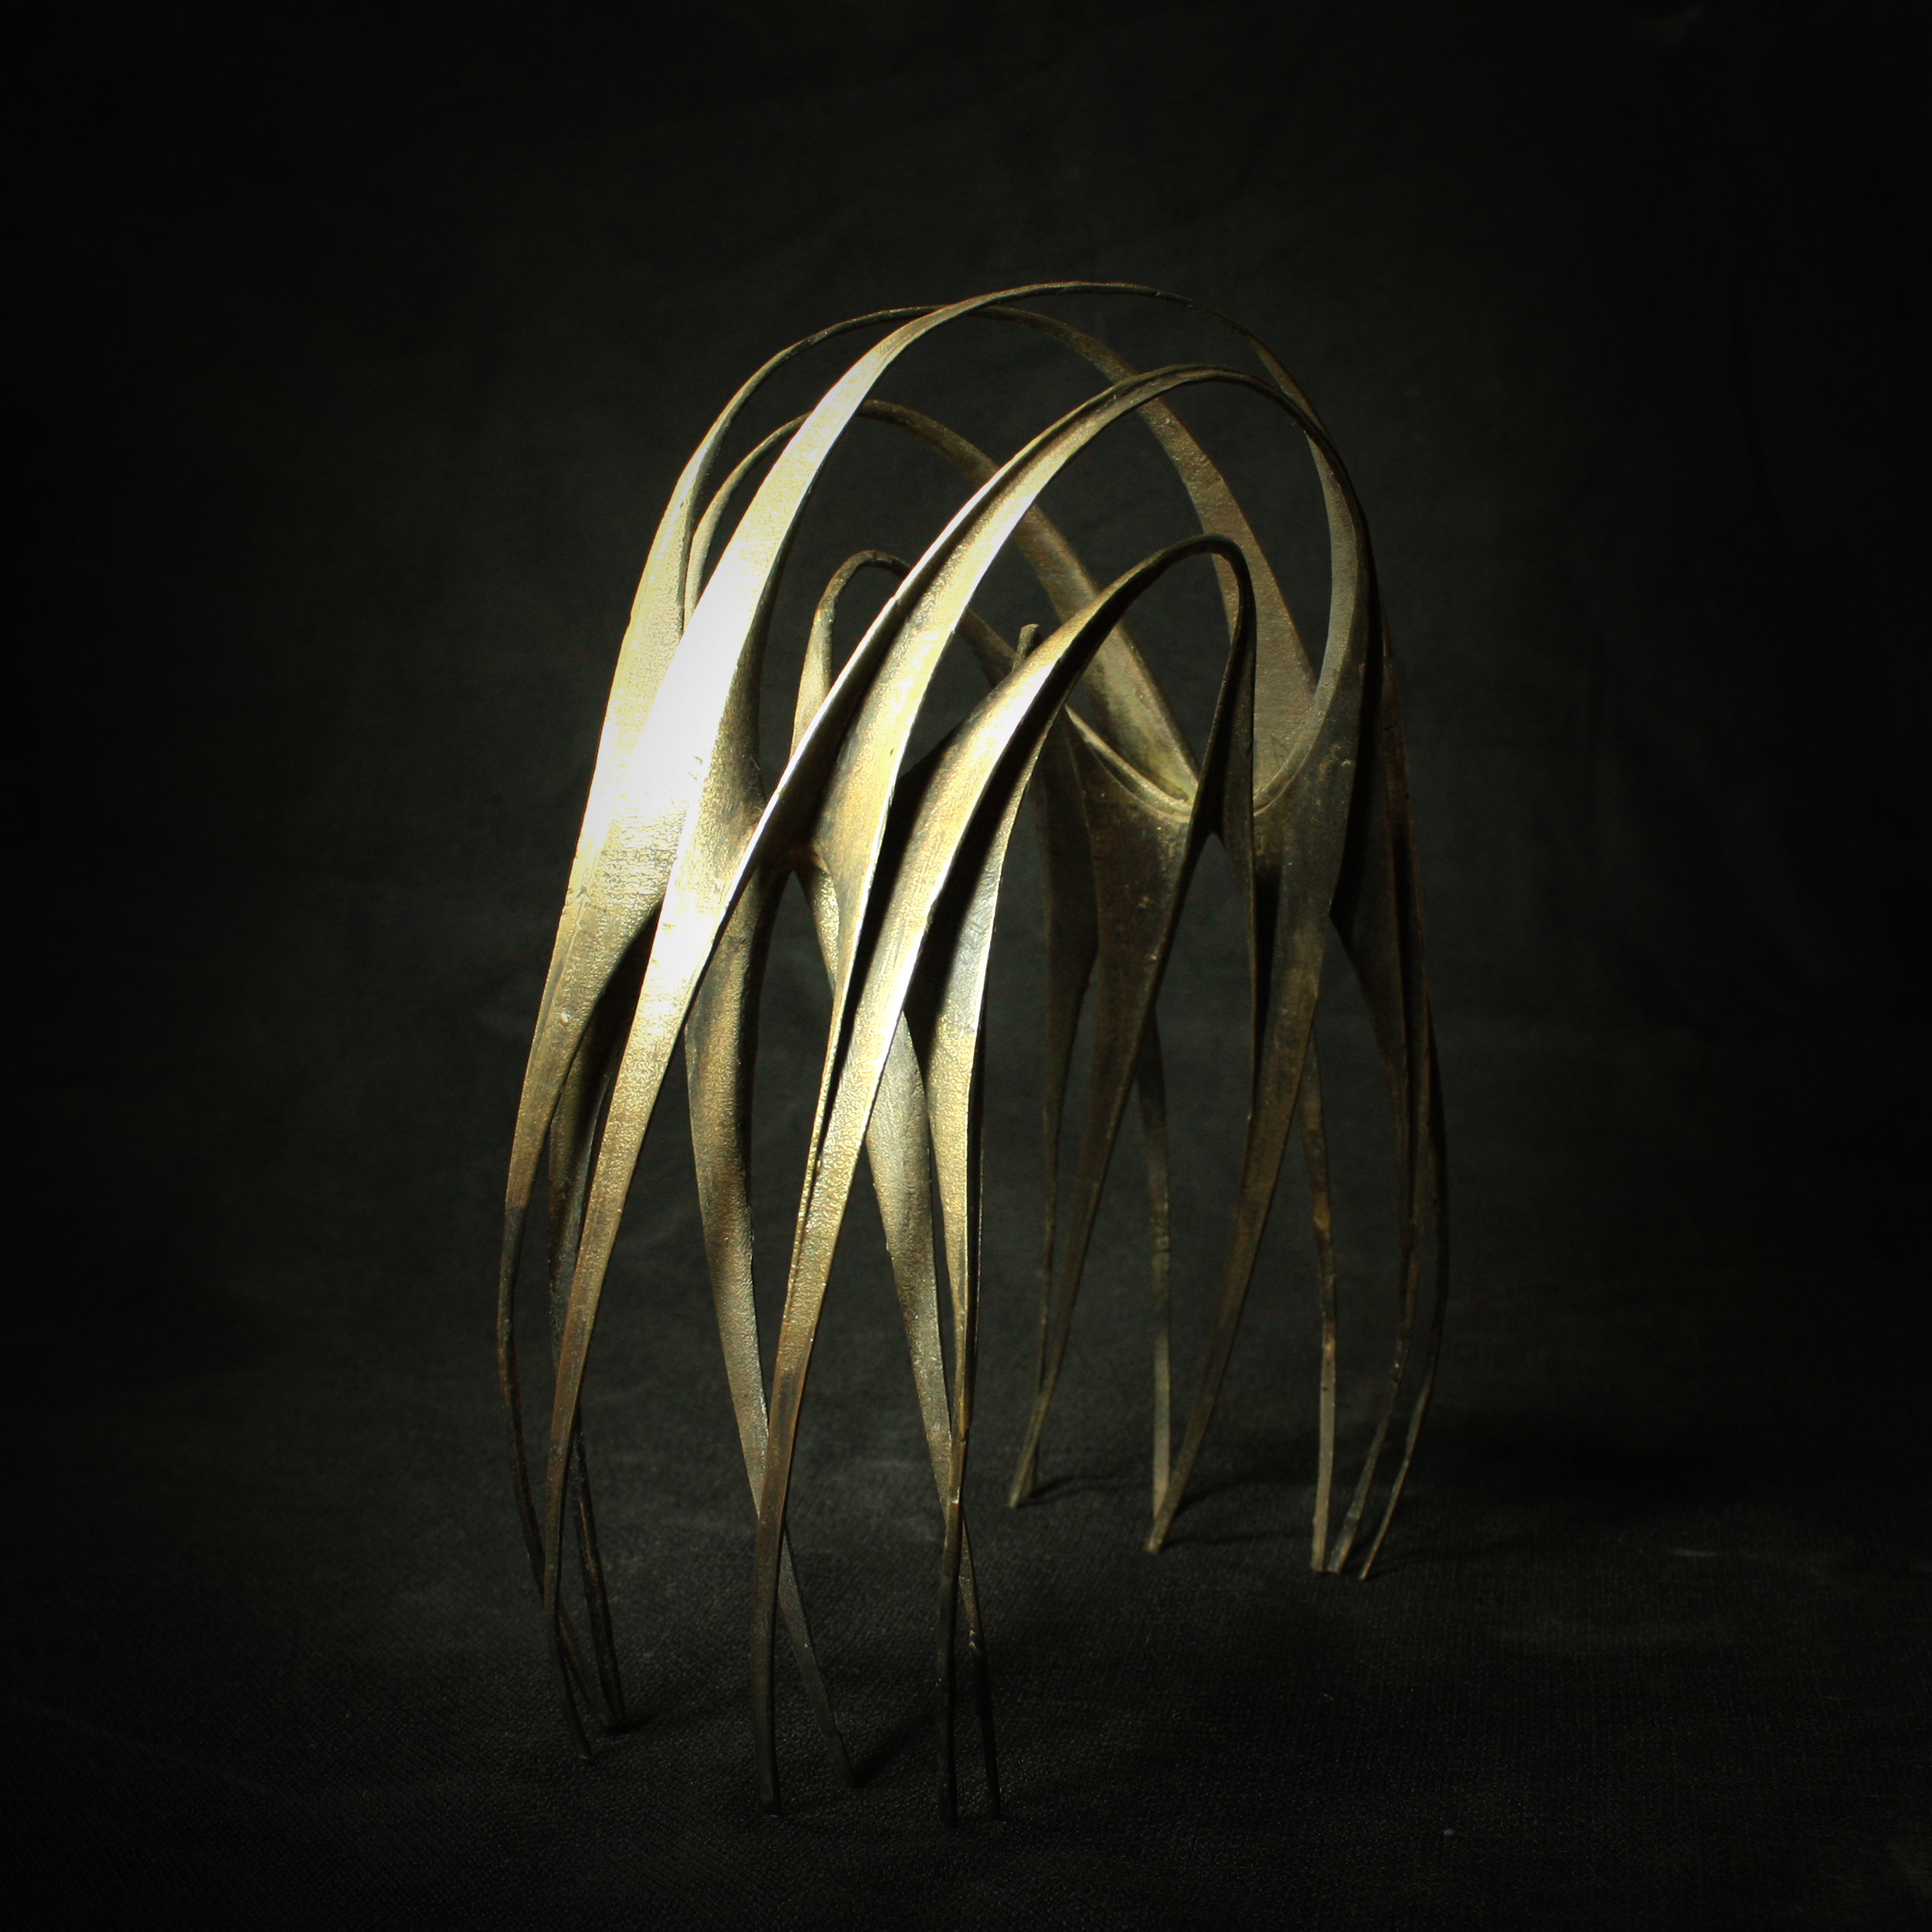 """The Arch, Bronze casted from 3D Printed Nylon, 12""""x4""""x4"""", 2012"""